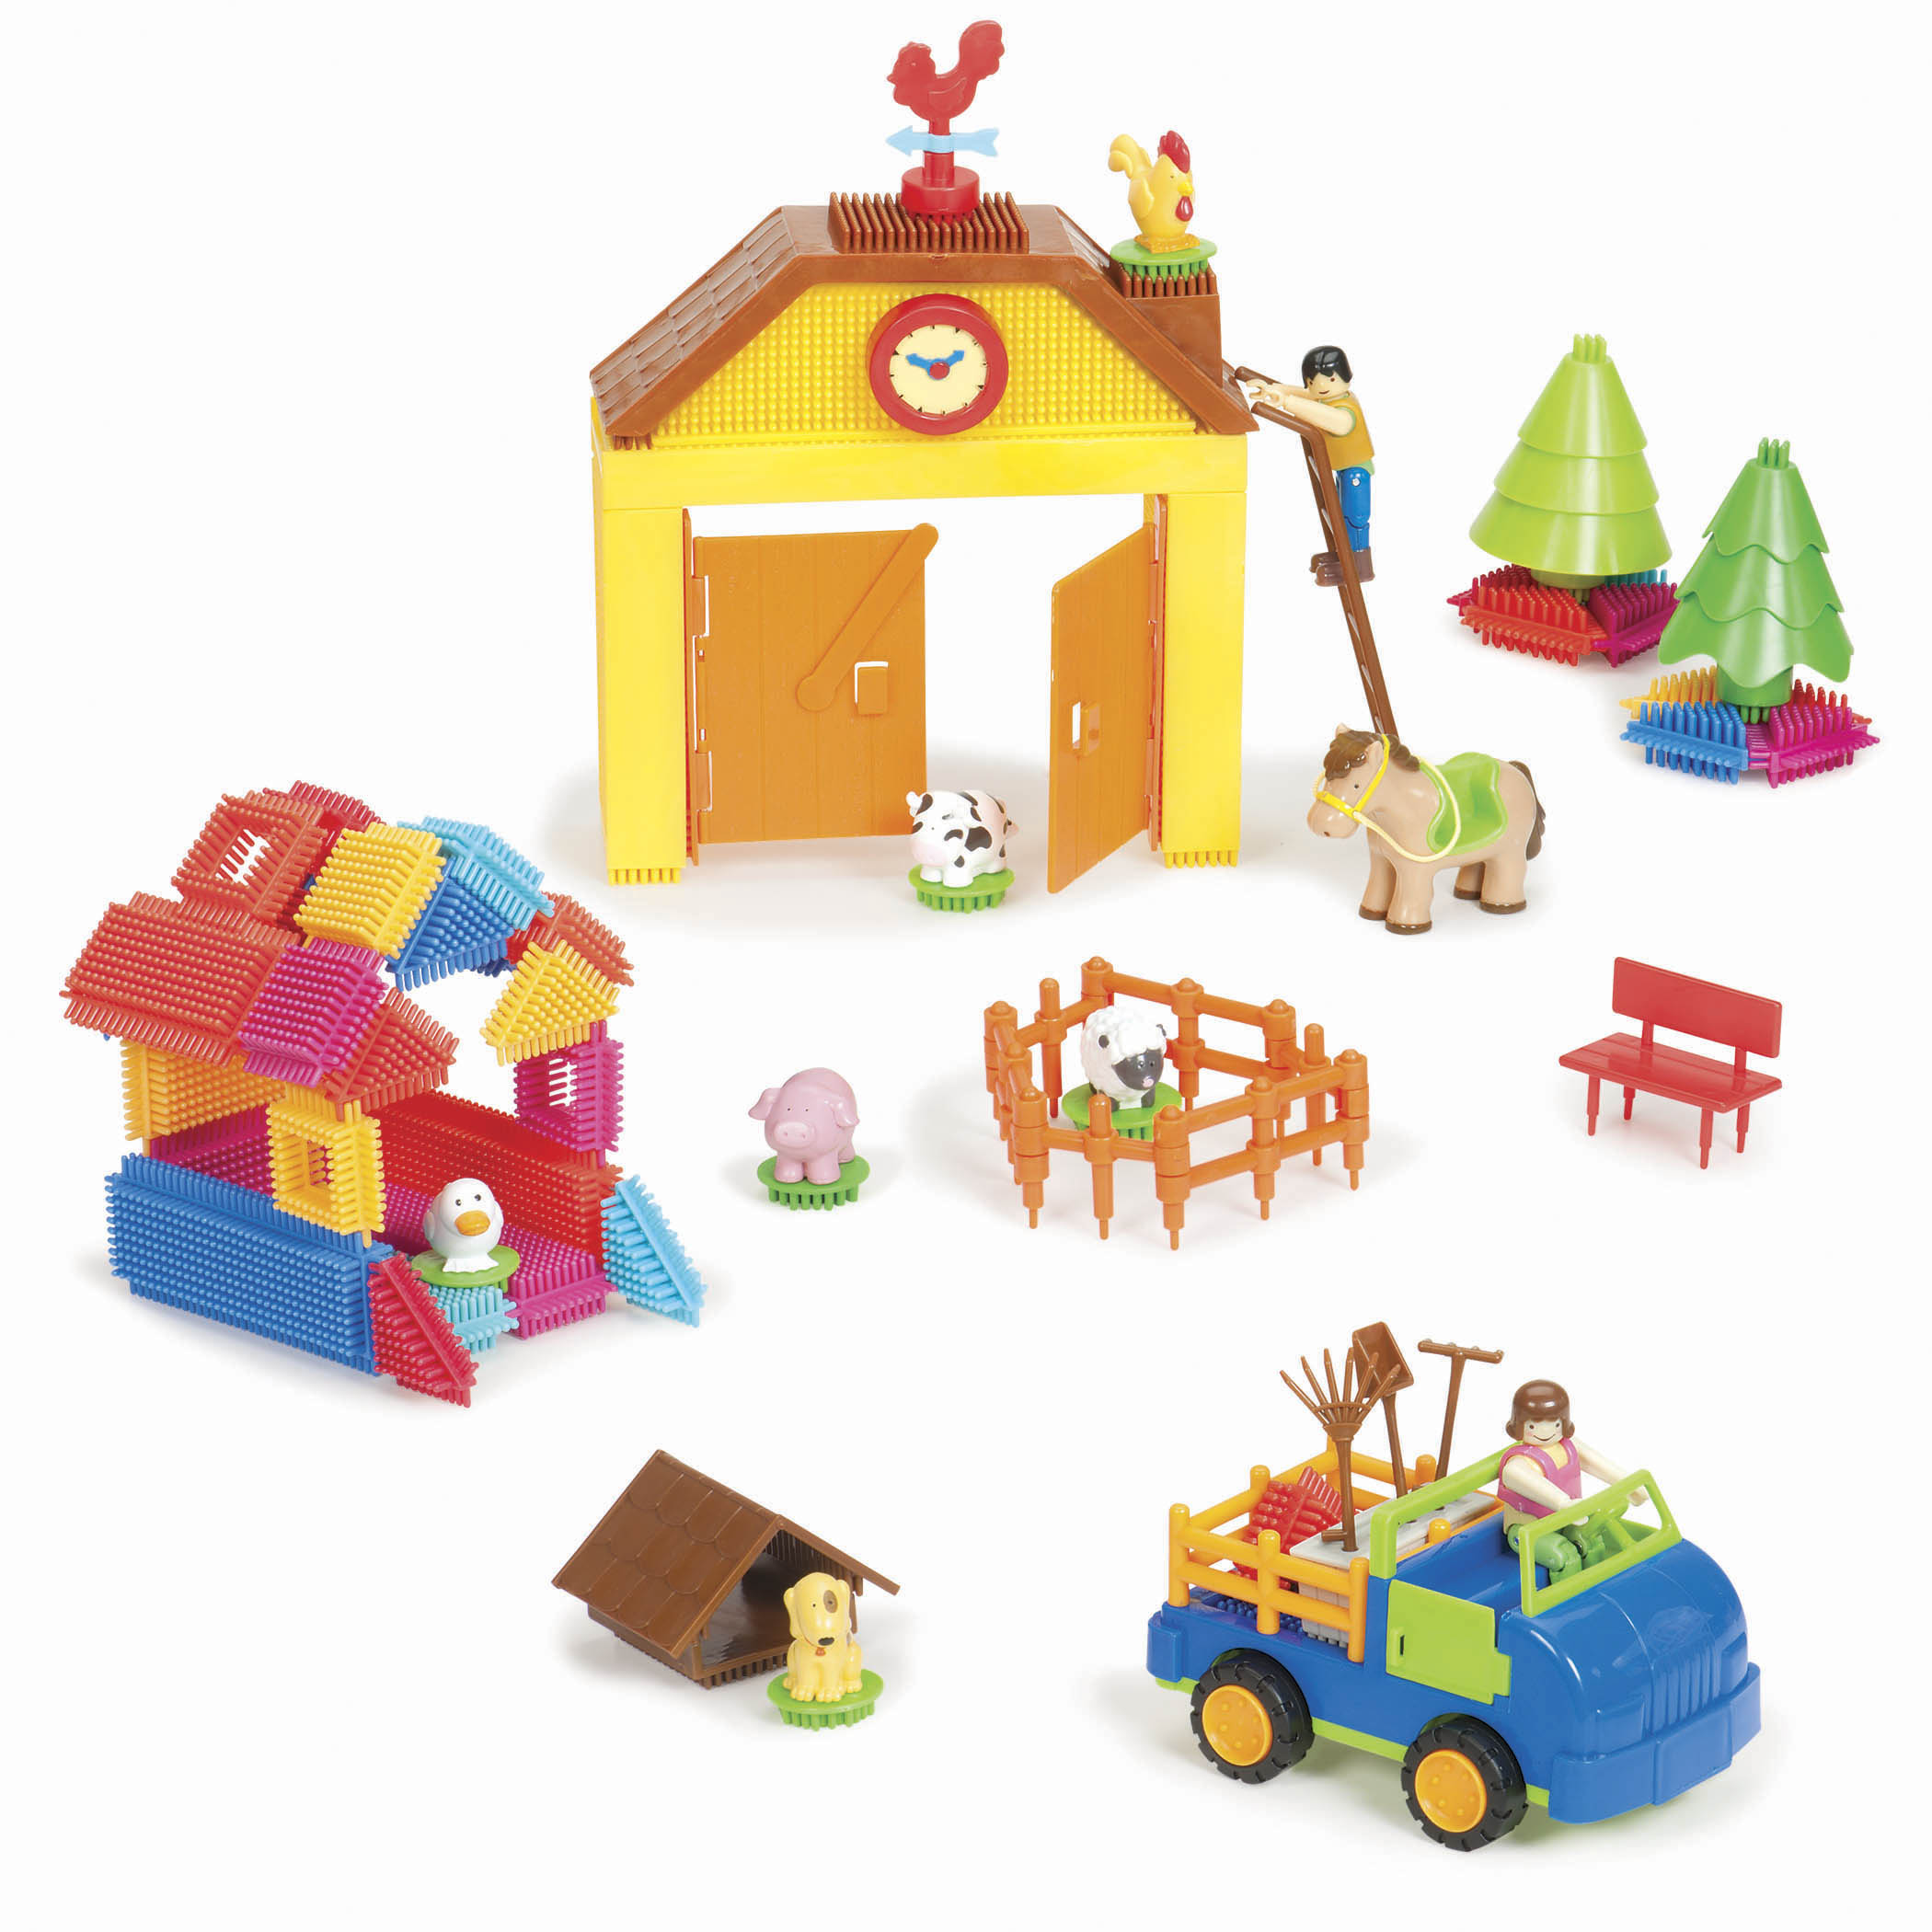 BRISTLE BLOCKS 66-PIECE FARM SET